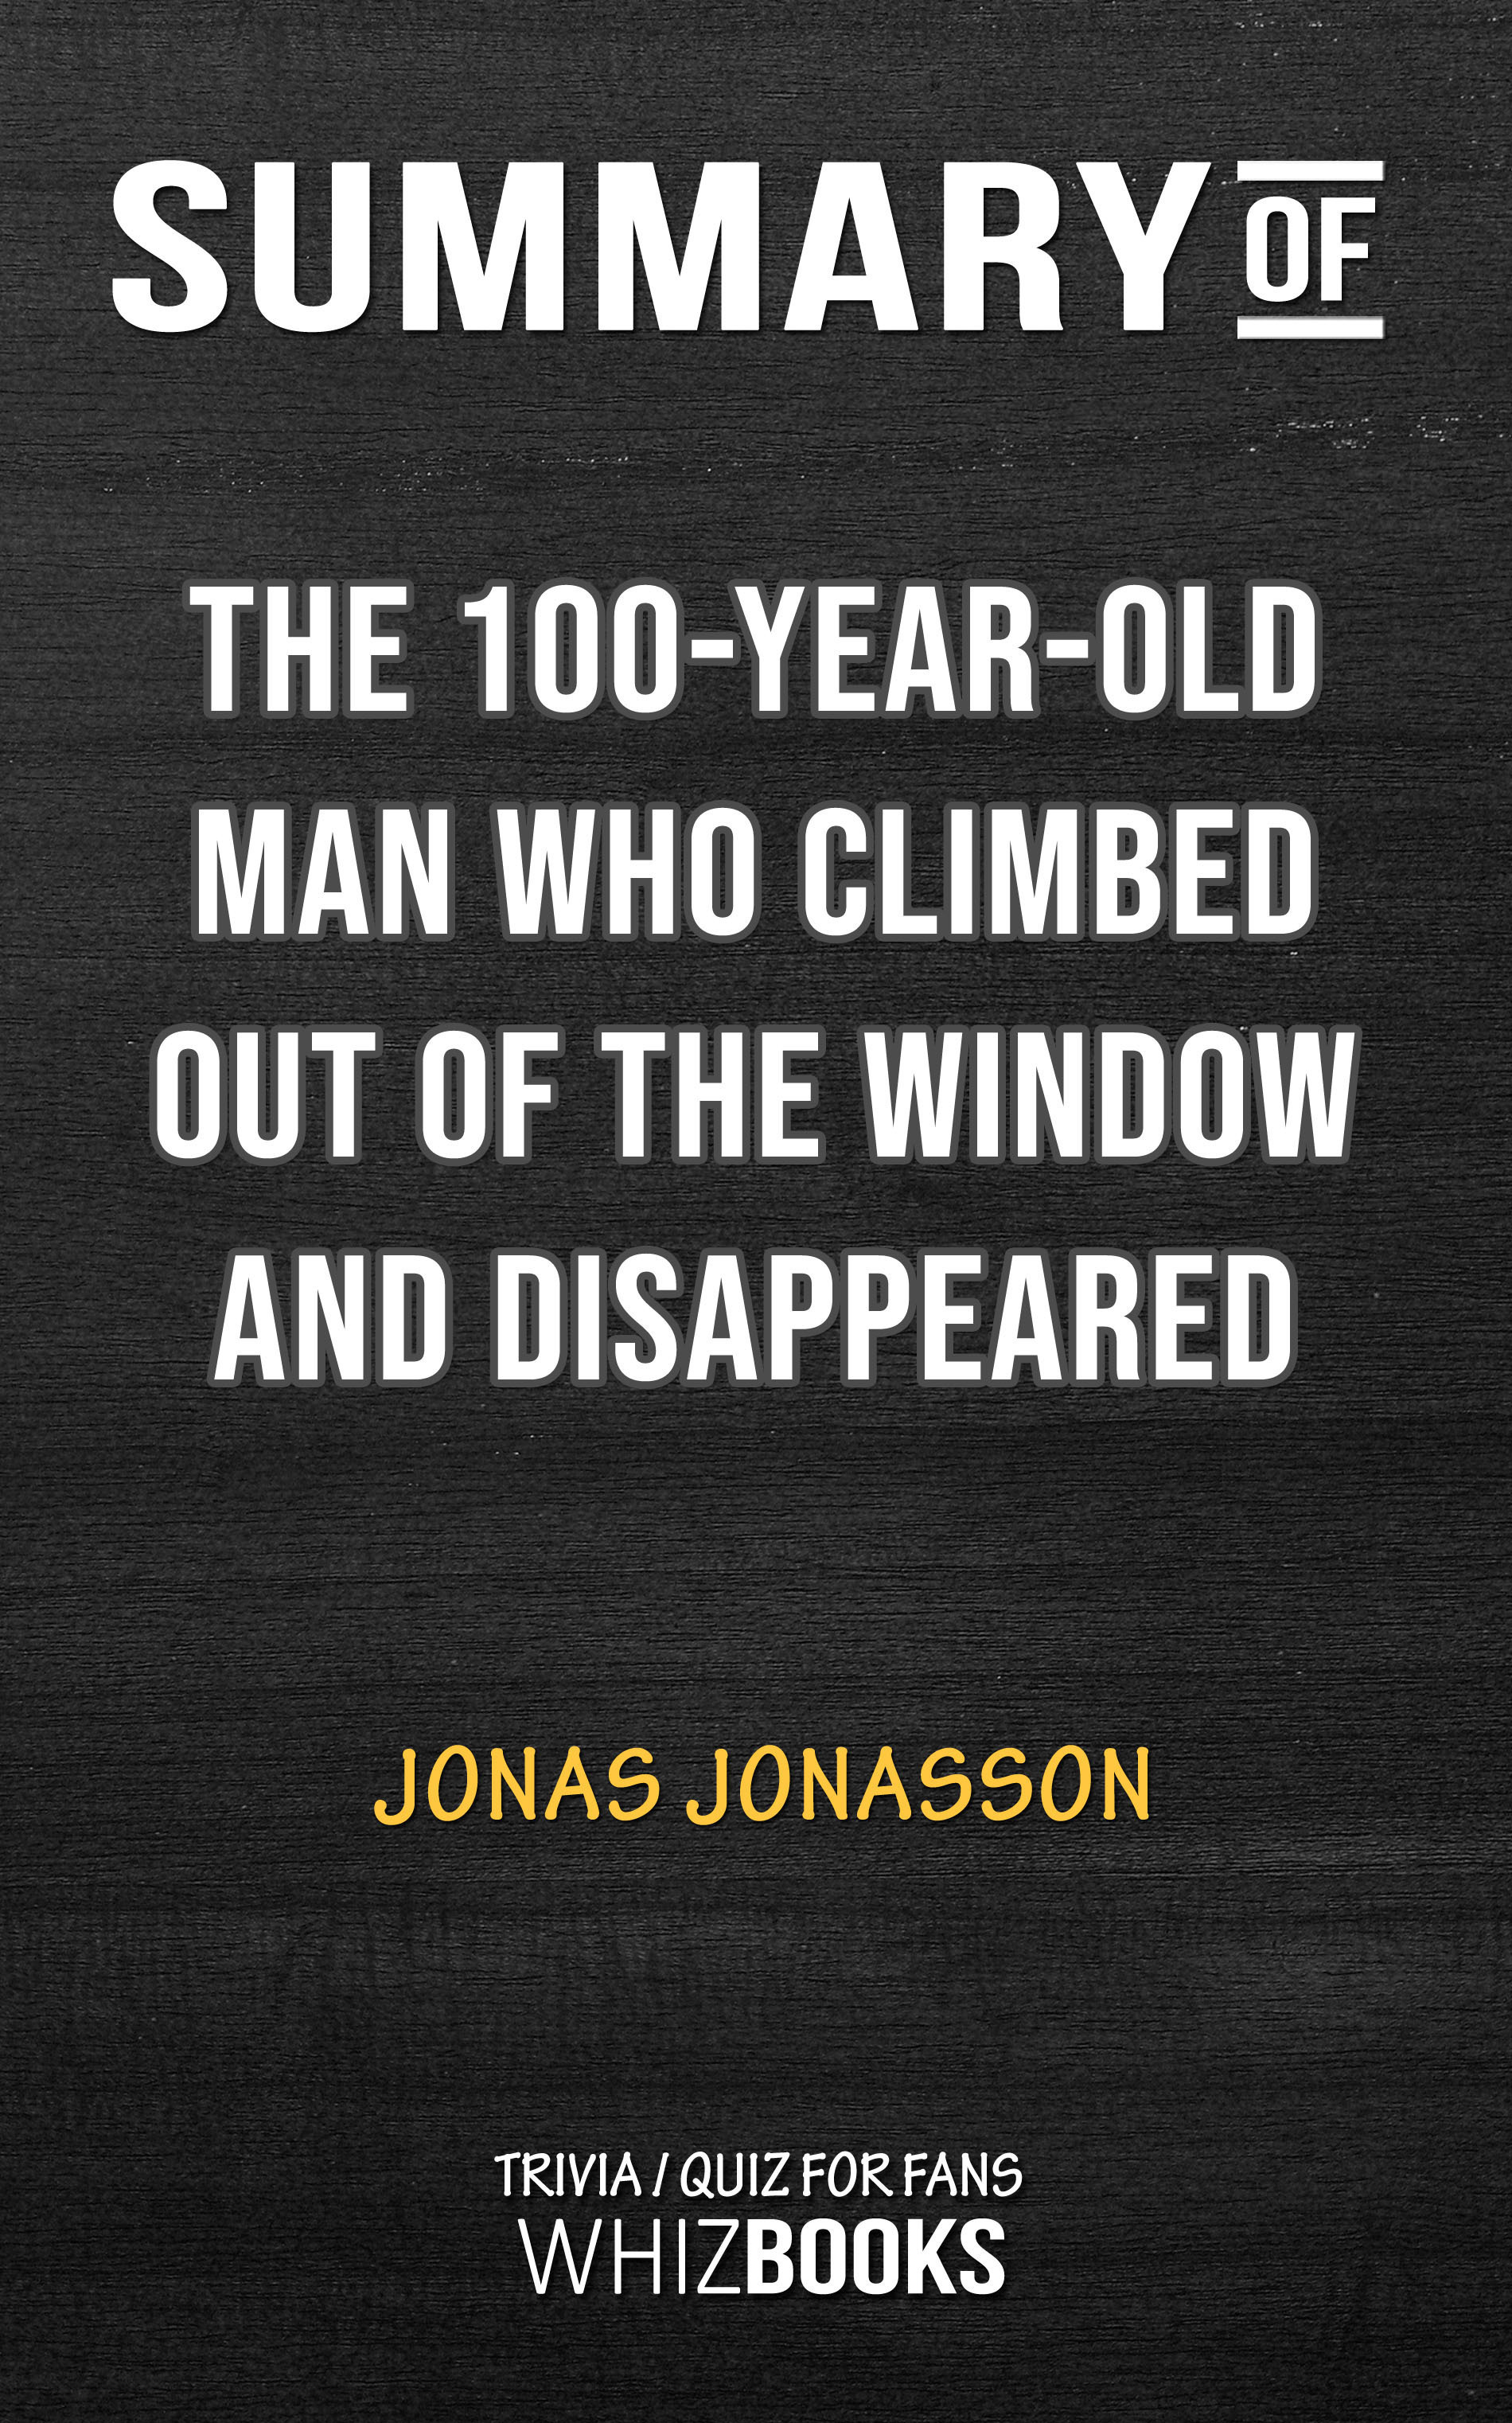 Summary of The 100-Year-Old Man Who Climbed Out the Window and Disappeared by Jonas Jonasson | Trivia/Quiz for Fans